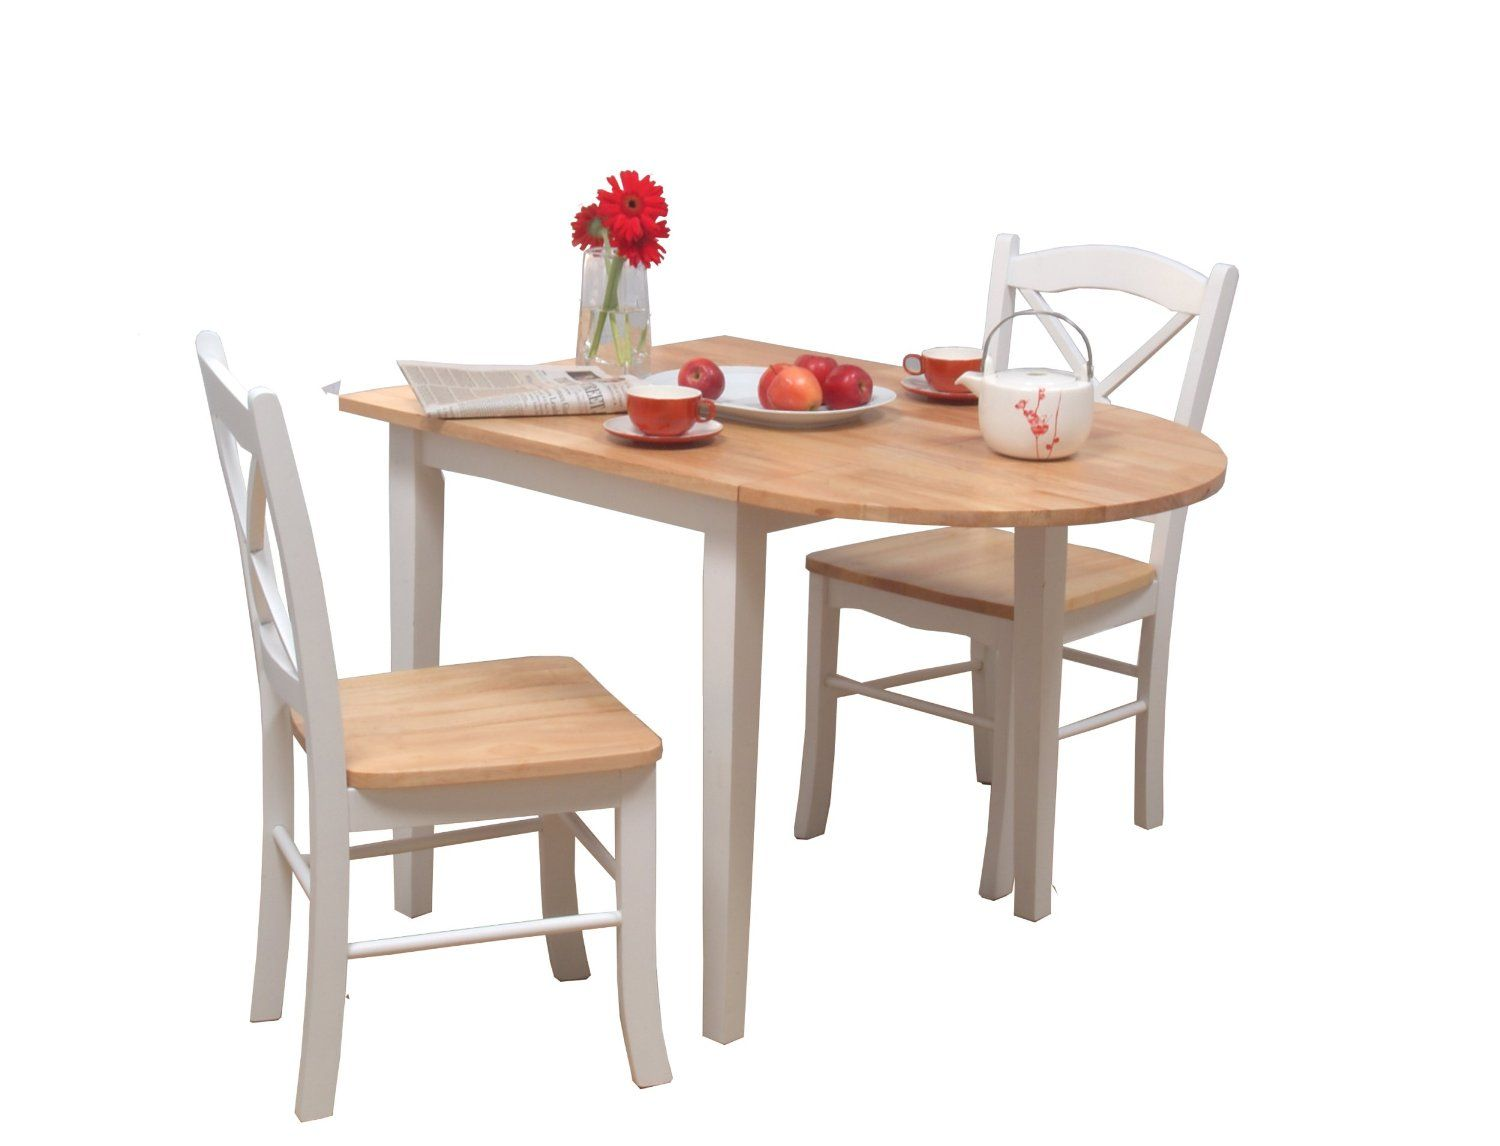 0187893 pe340789 s5jpg dining table and chairs for two. randythomas.co